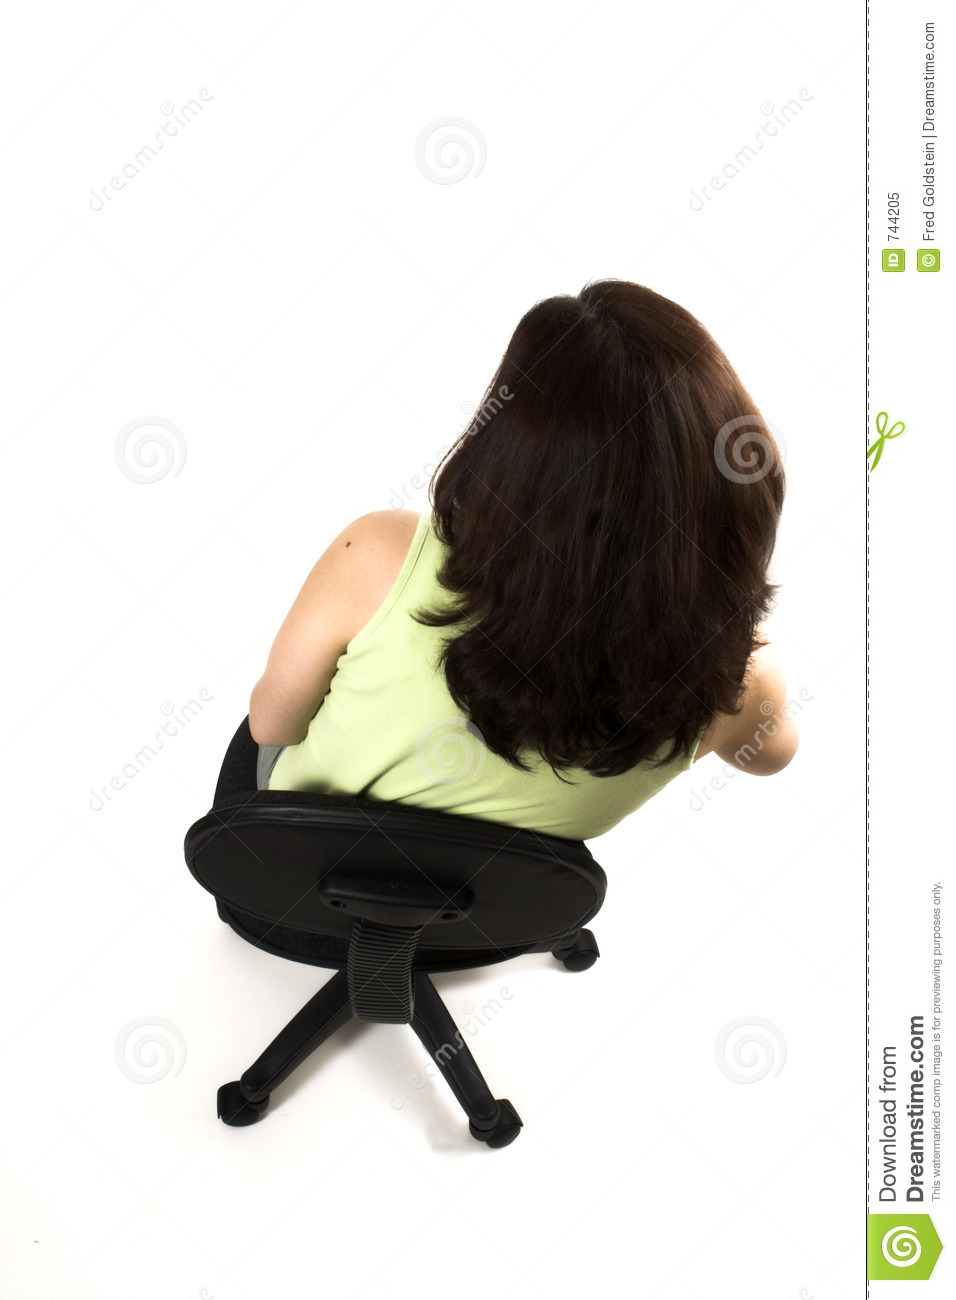 chair for office healthy kids table and set kmart bad posture of girl sitting royalty free stock photo - image: 744205